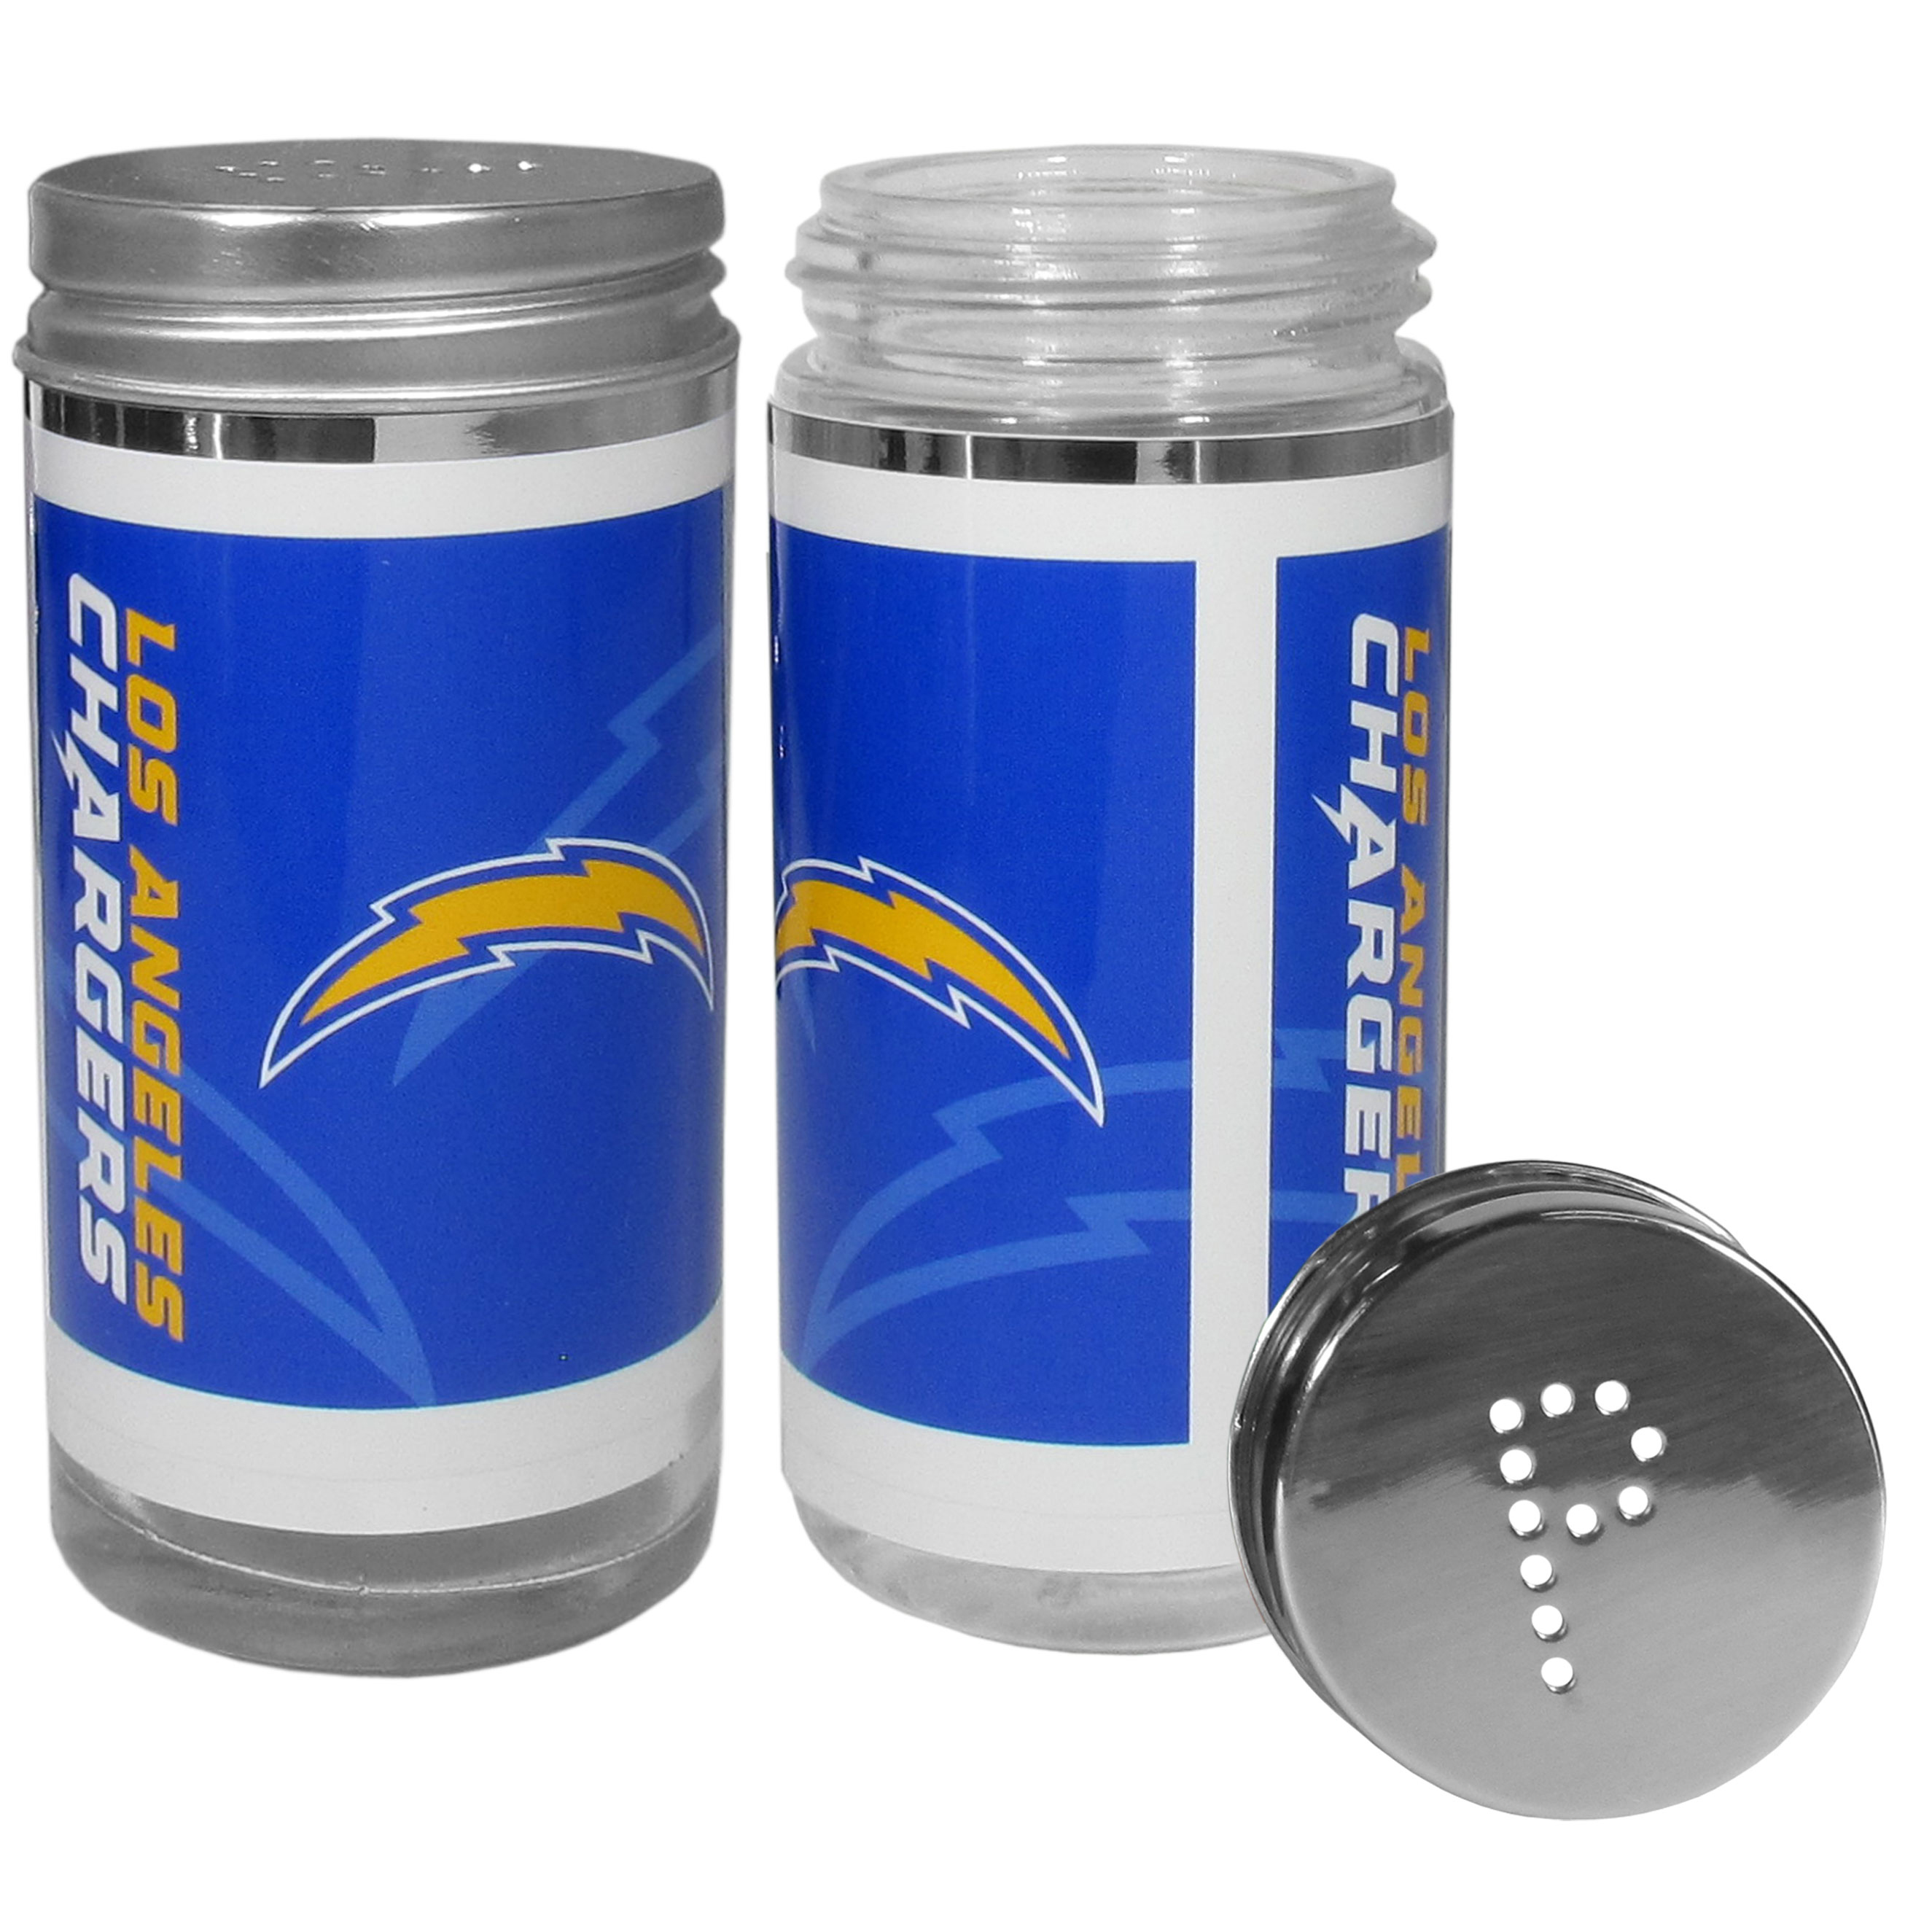 Los Angeles Chargers Tailgater Salt & Pepper Shakers - No tailgate party is complete without your Los Angeles Chargers salt & pepper shakers featuring bright team graphics. The glass shakers are 3.75 inches tall and the screw top lids have holes that spell out P and S. These team shakers are a great grill accessory whether you are barbecuing on the patio, picnicing or having a game day party.